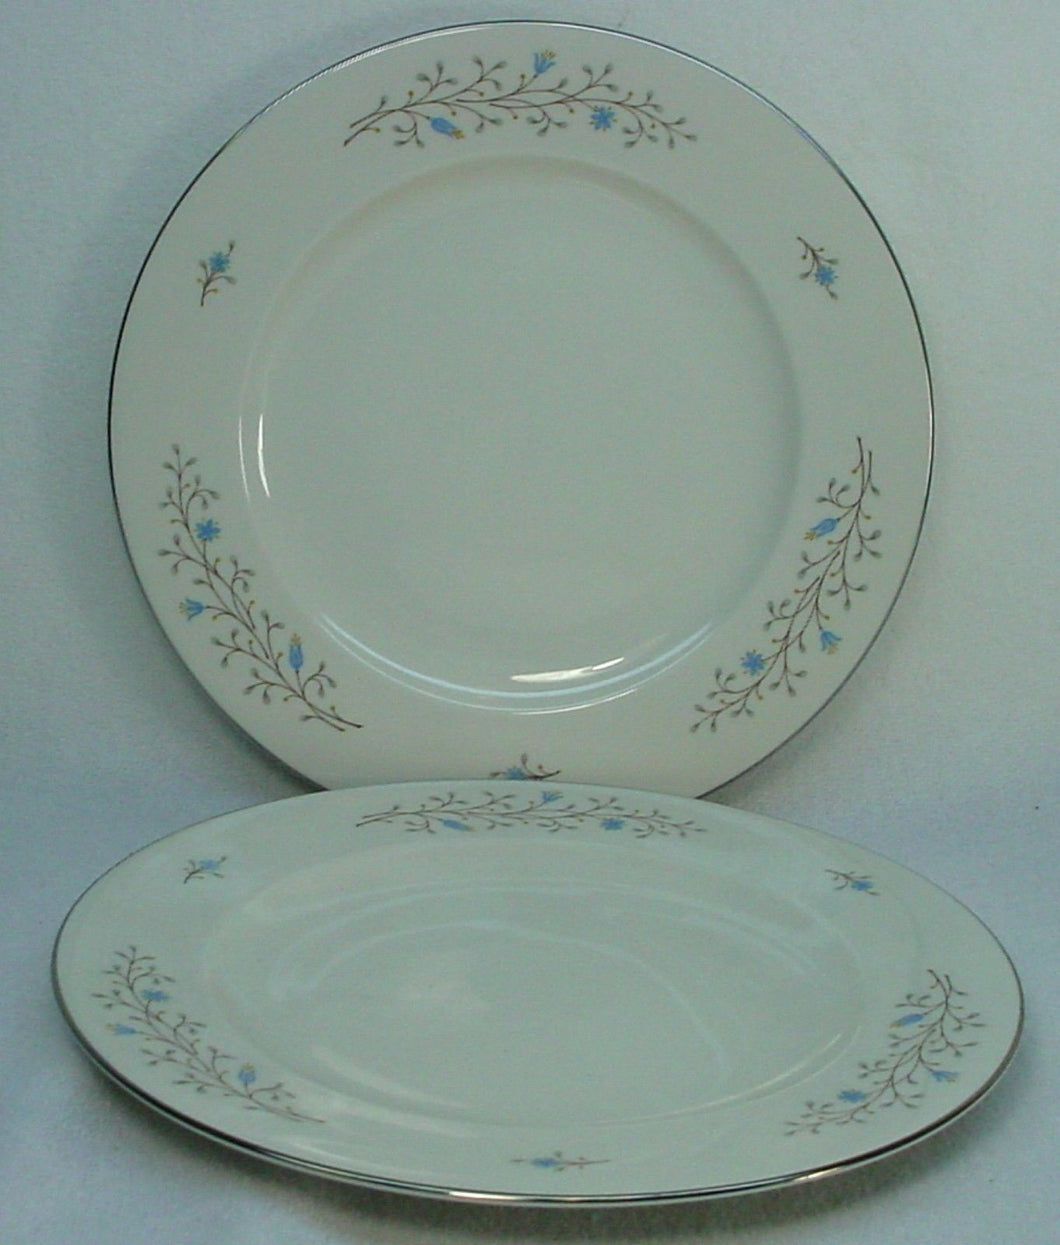 SYRACUSE china INSPIRATION pattern Dinner Plate - Set of Two (2) @ 10-3/4